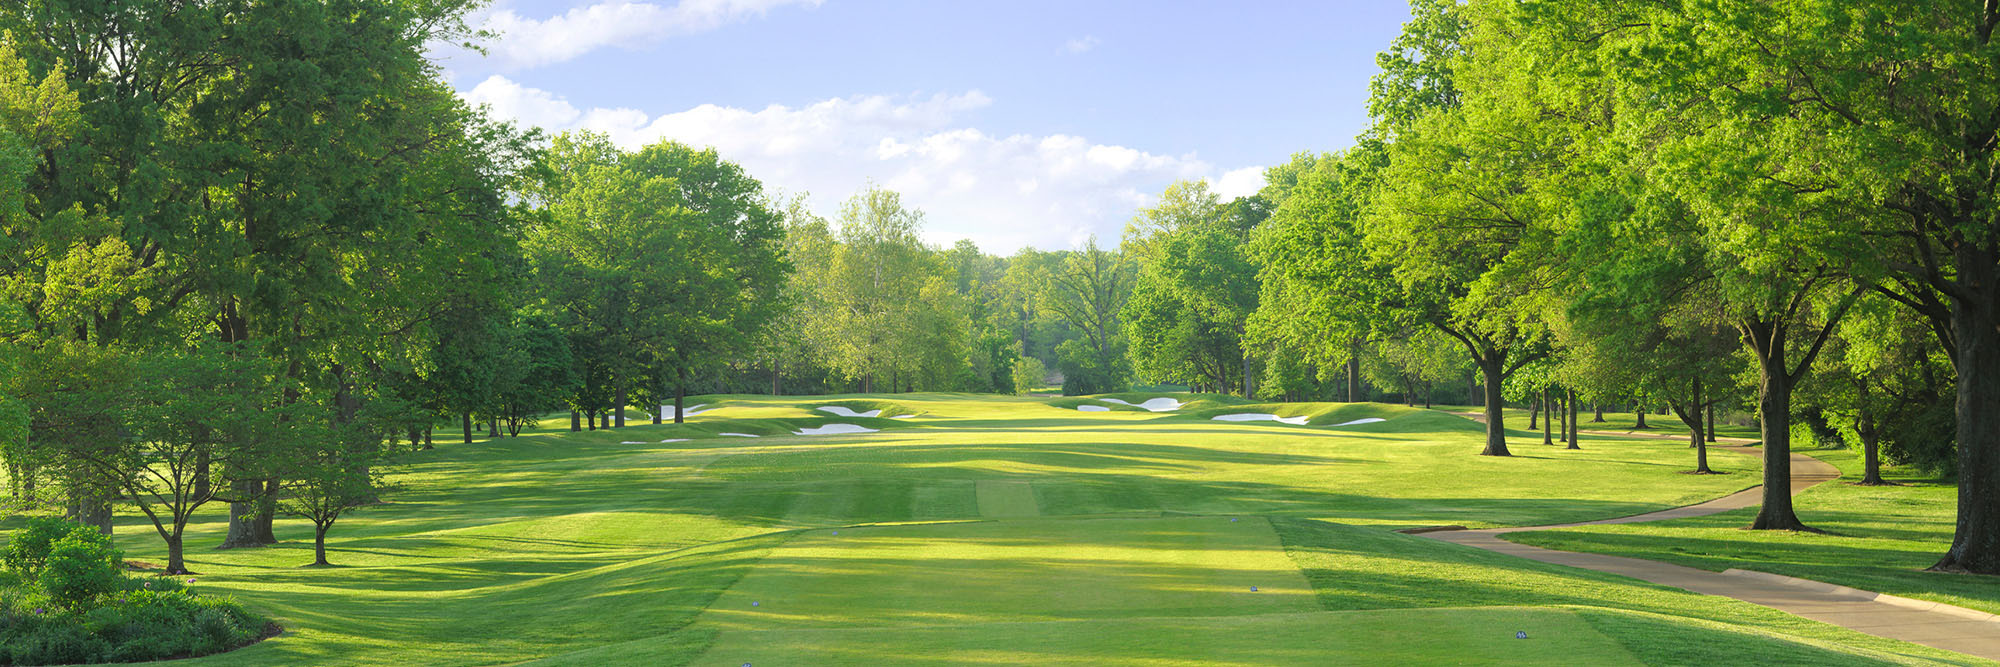 Golf Course Image - Bellerive No. 1